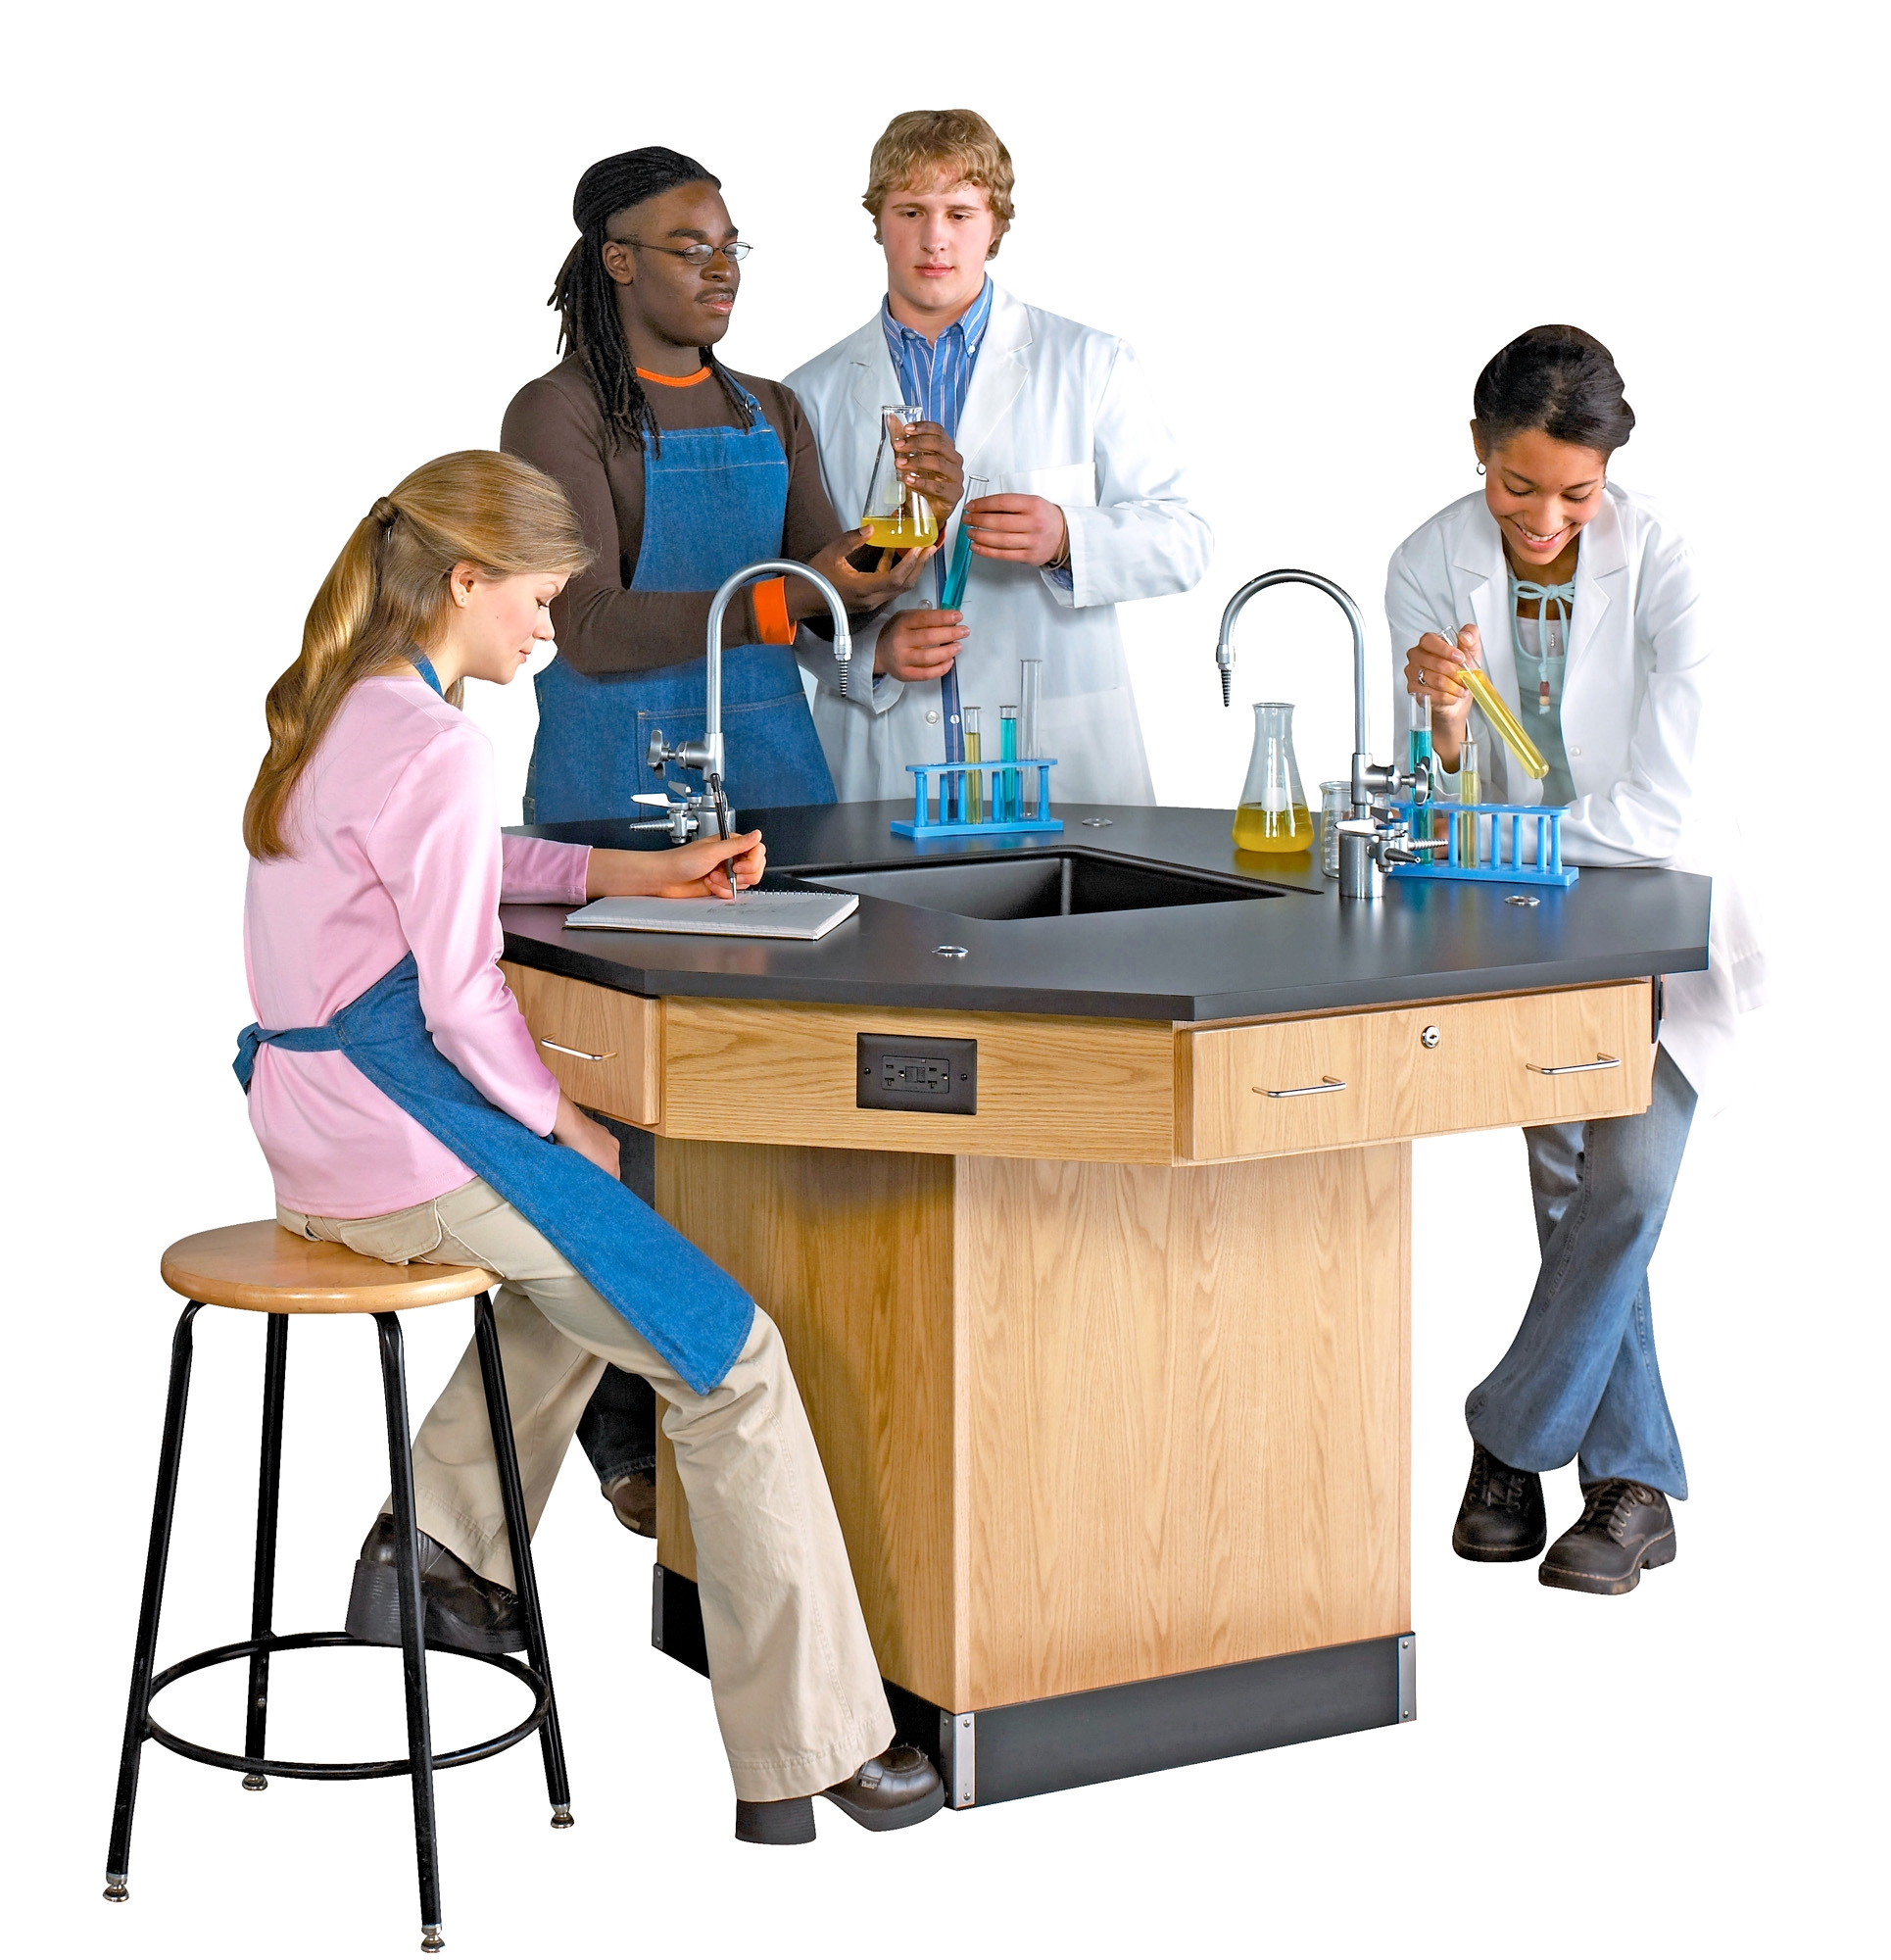 Diversified Woodcrafts Octagon Workstation with Pedestal Base & Fixtures - Epoxy Top